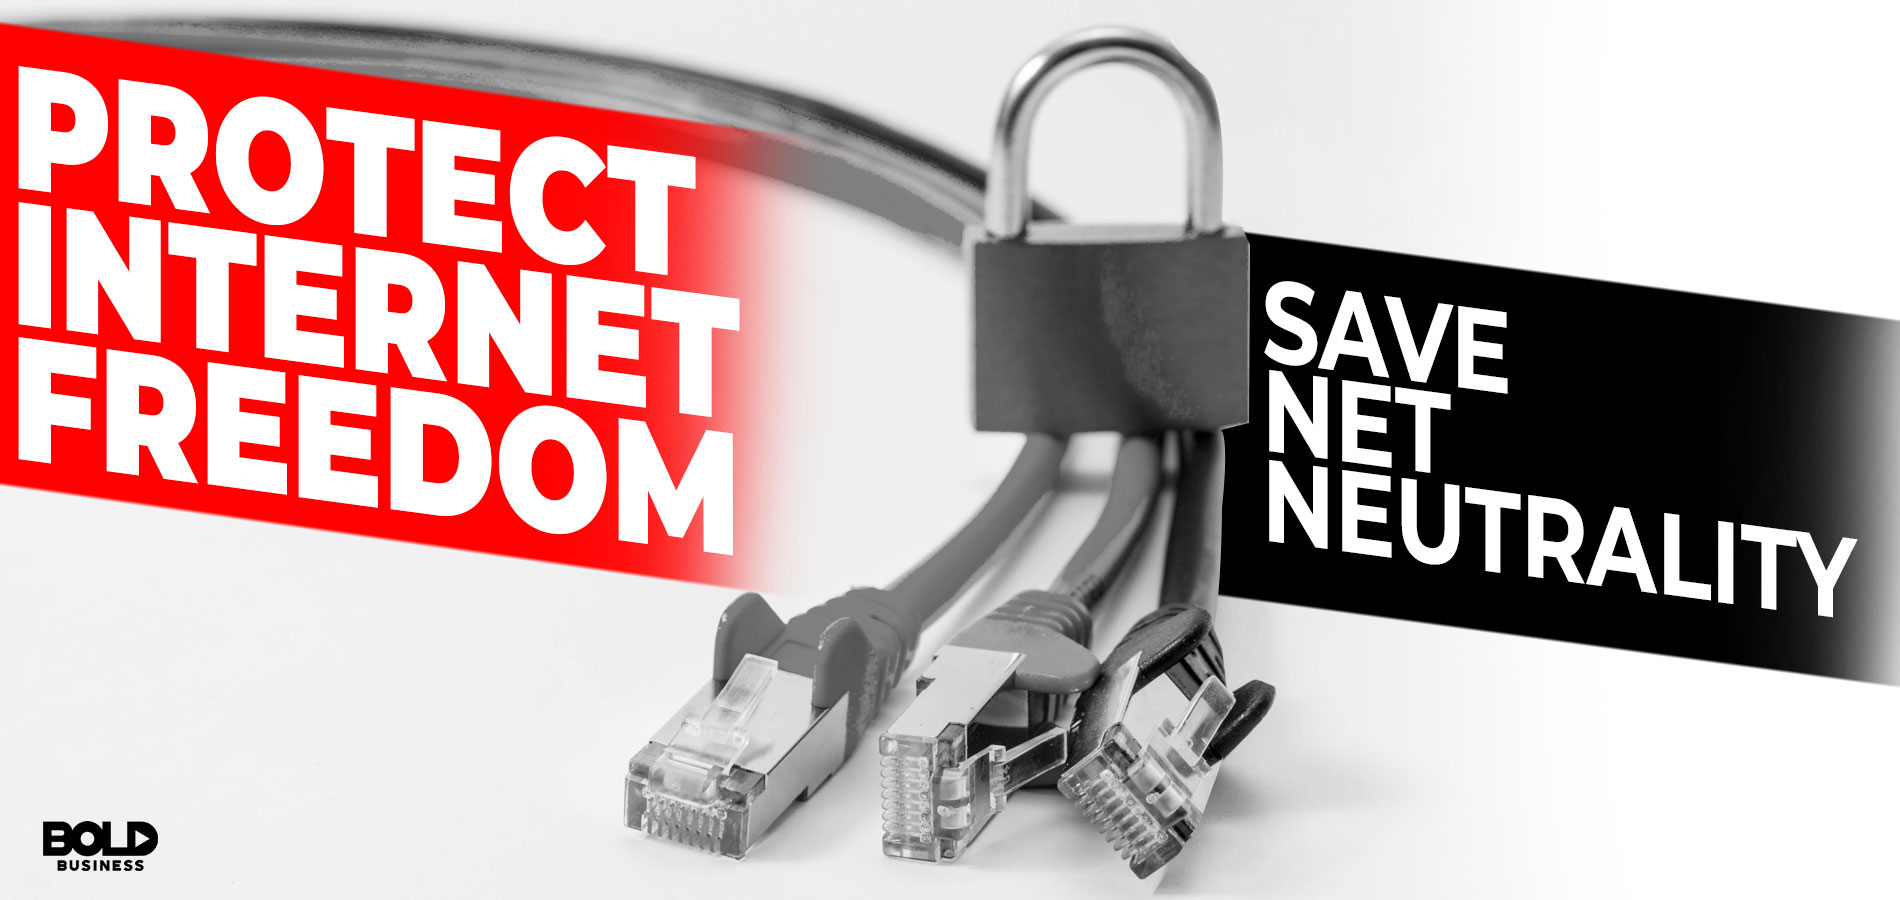 Protect Internet Neutrality and net neutrality